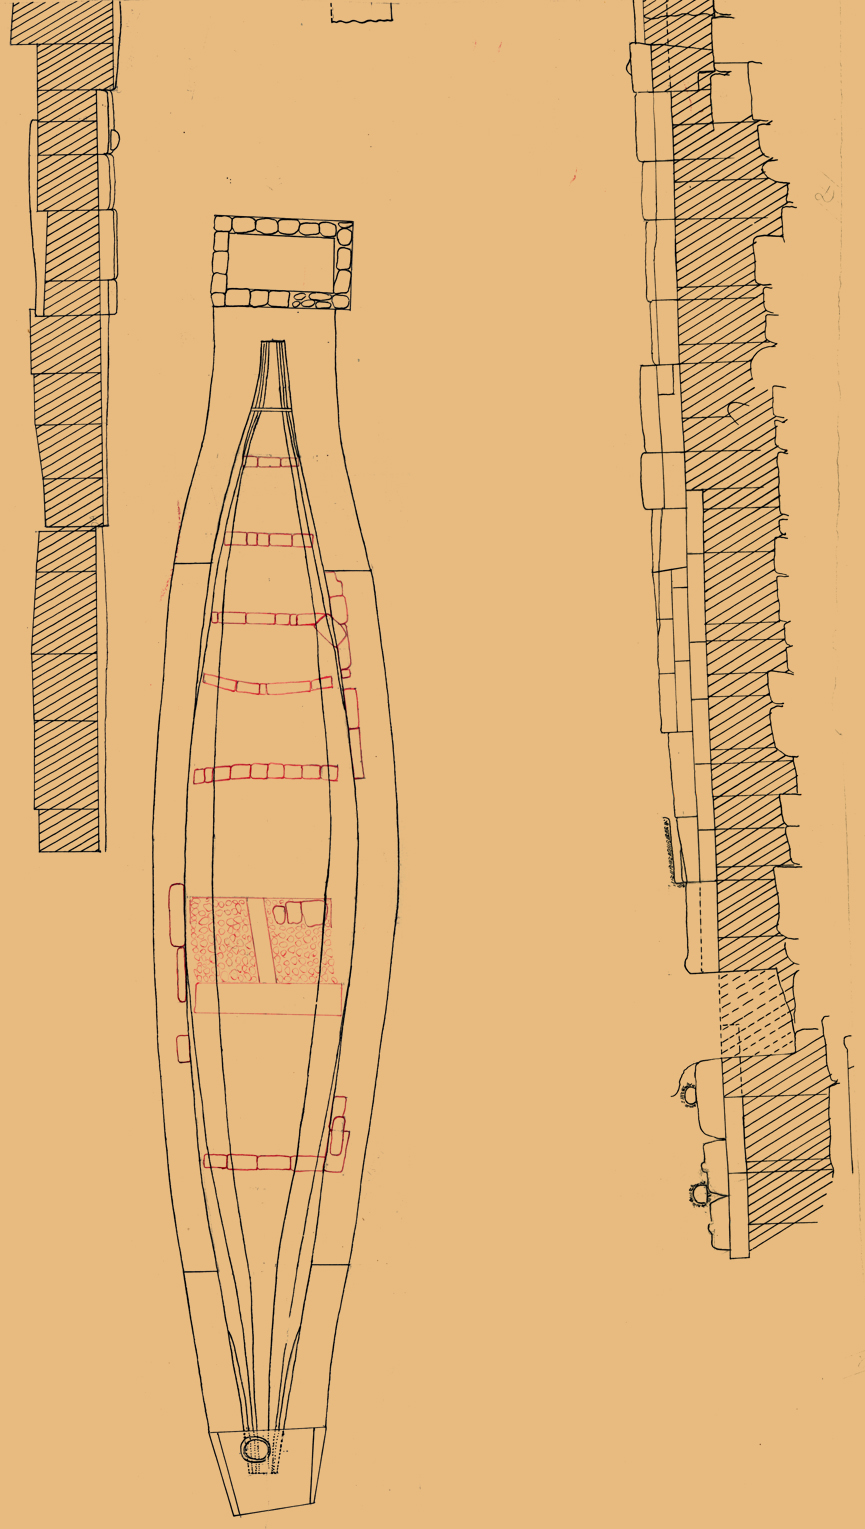 Maps and plans: Plan of Eastern cemetery: boat pit between pyramids G I-a and G I-b